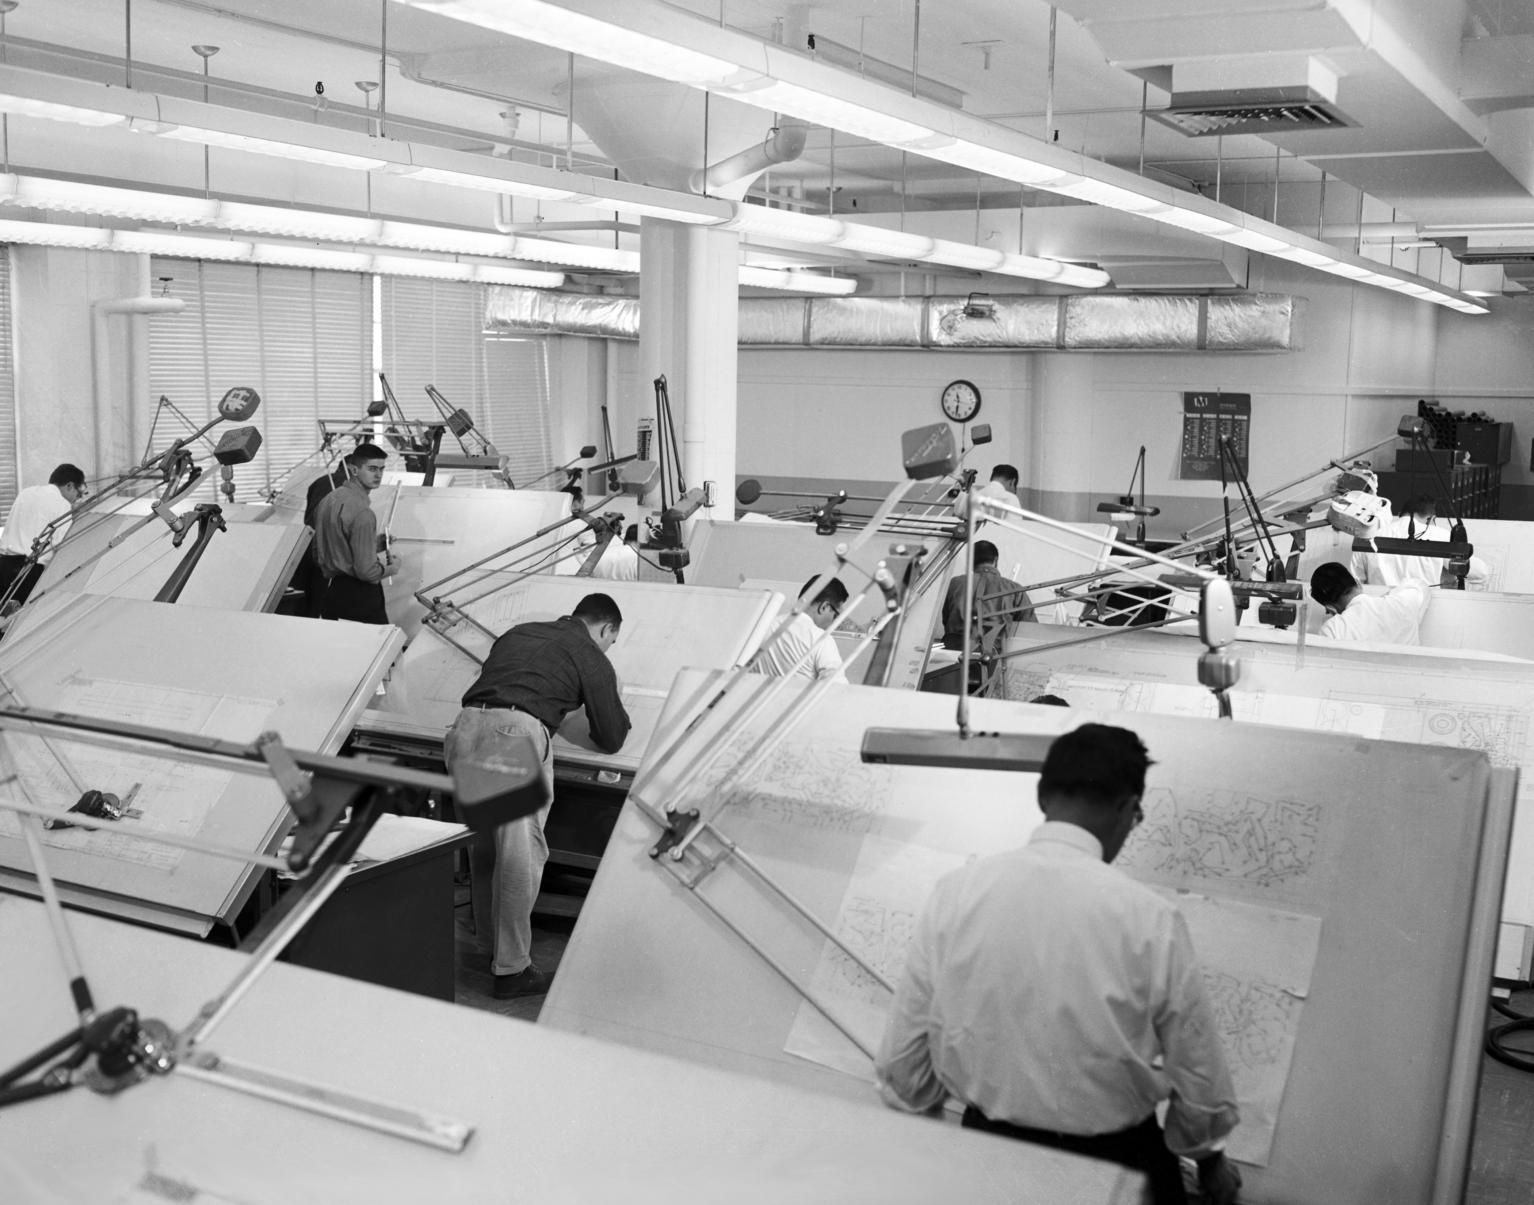 MIT Lab Engineers in a Drafting Room